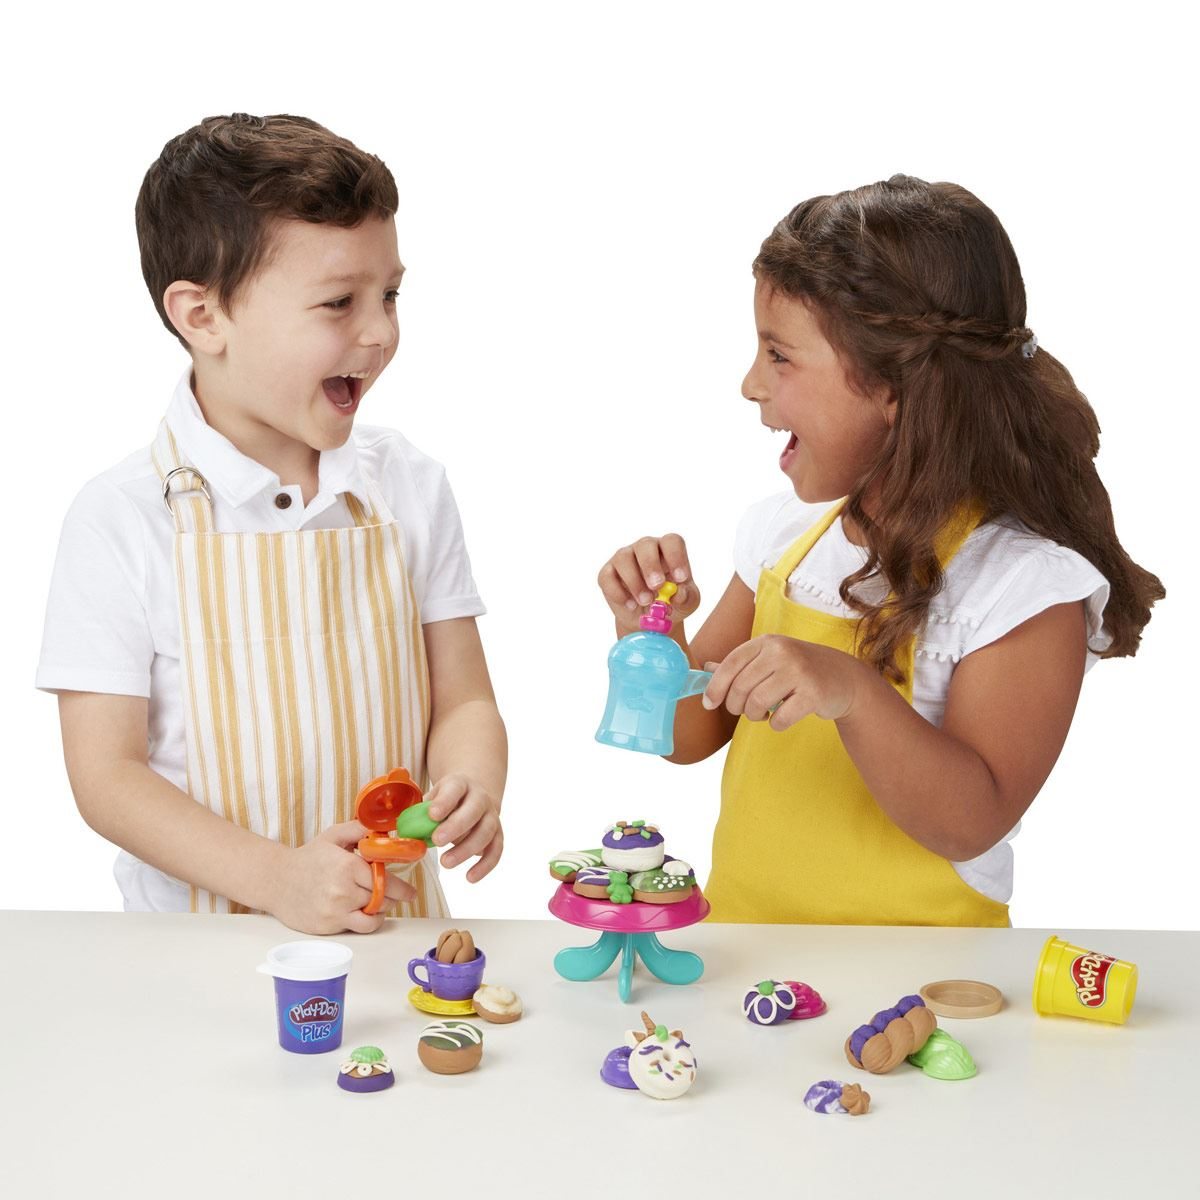 Donas Deliciosas Play-Doh Kitchen